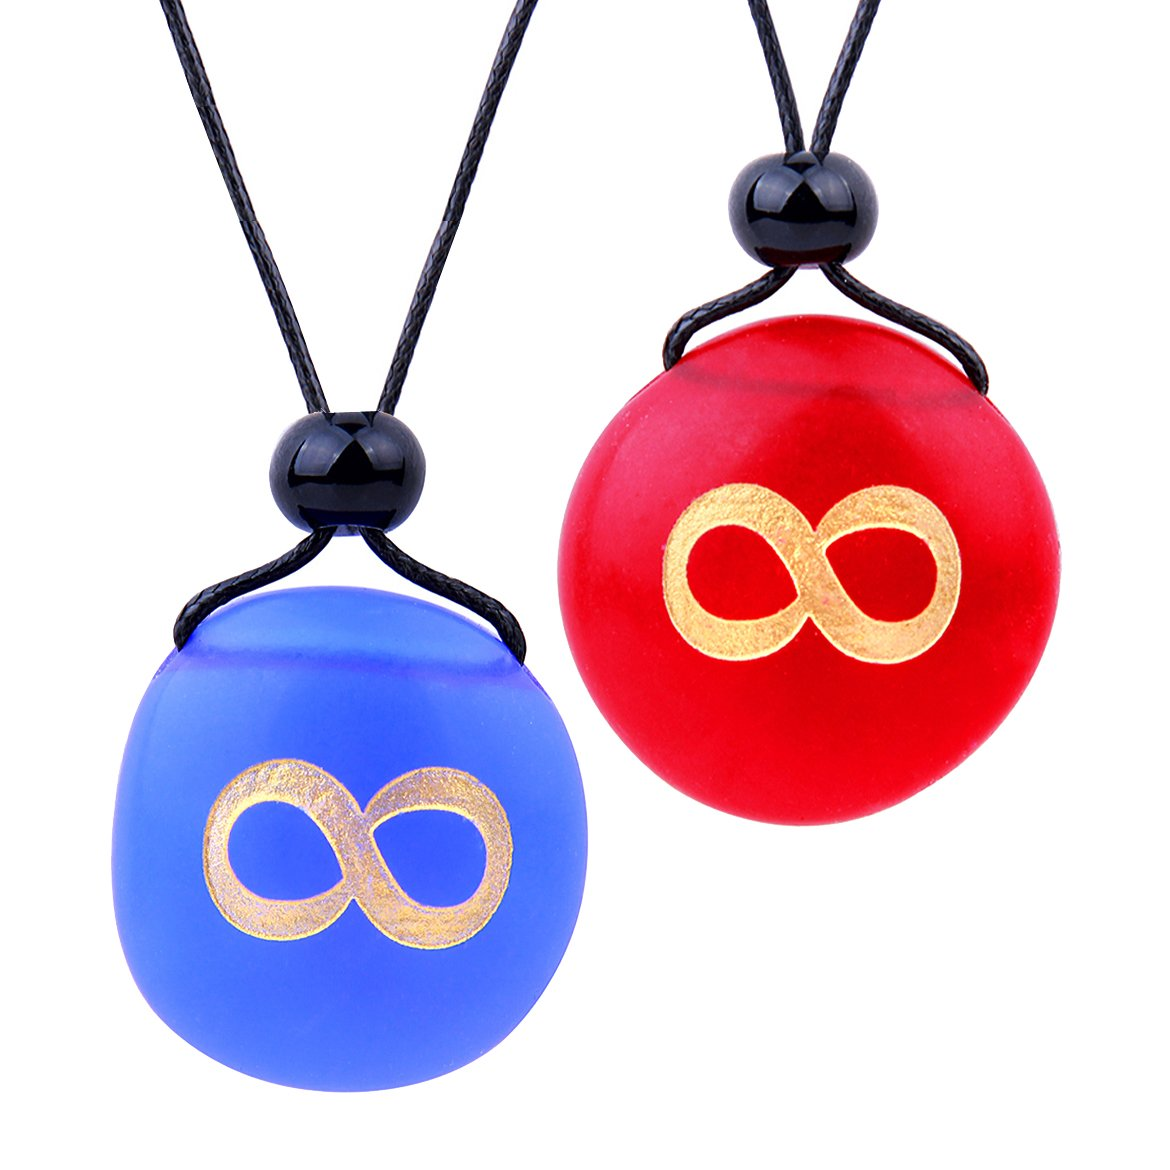 Tibetan Infinity Symbols Love Couples and Best Friends Jewelry Amulets and Talismans